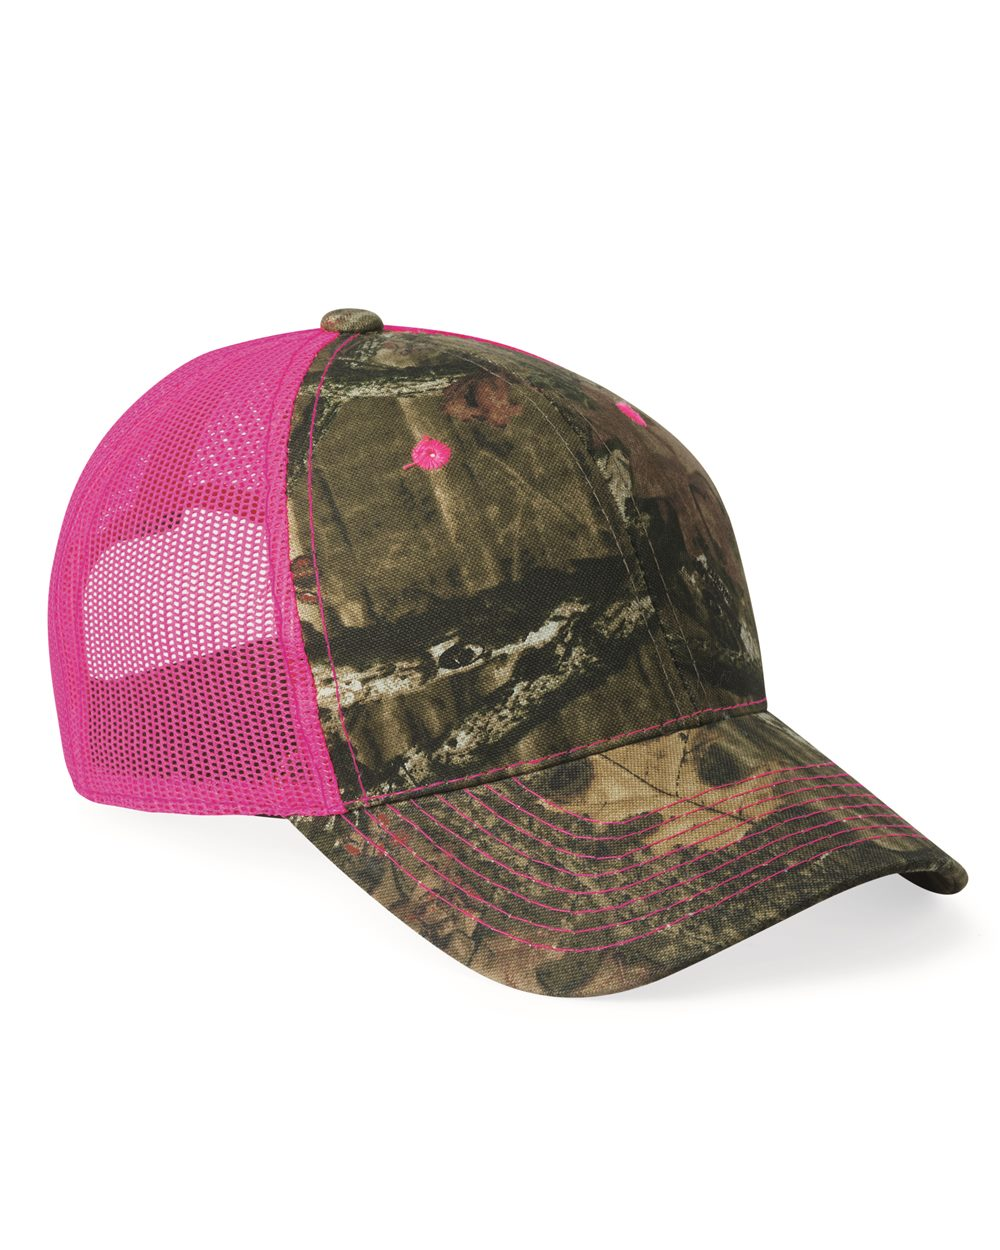 Outdoor Cap - Camo Cap with Neon Mesh Back - CNM100M